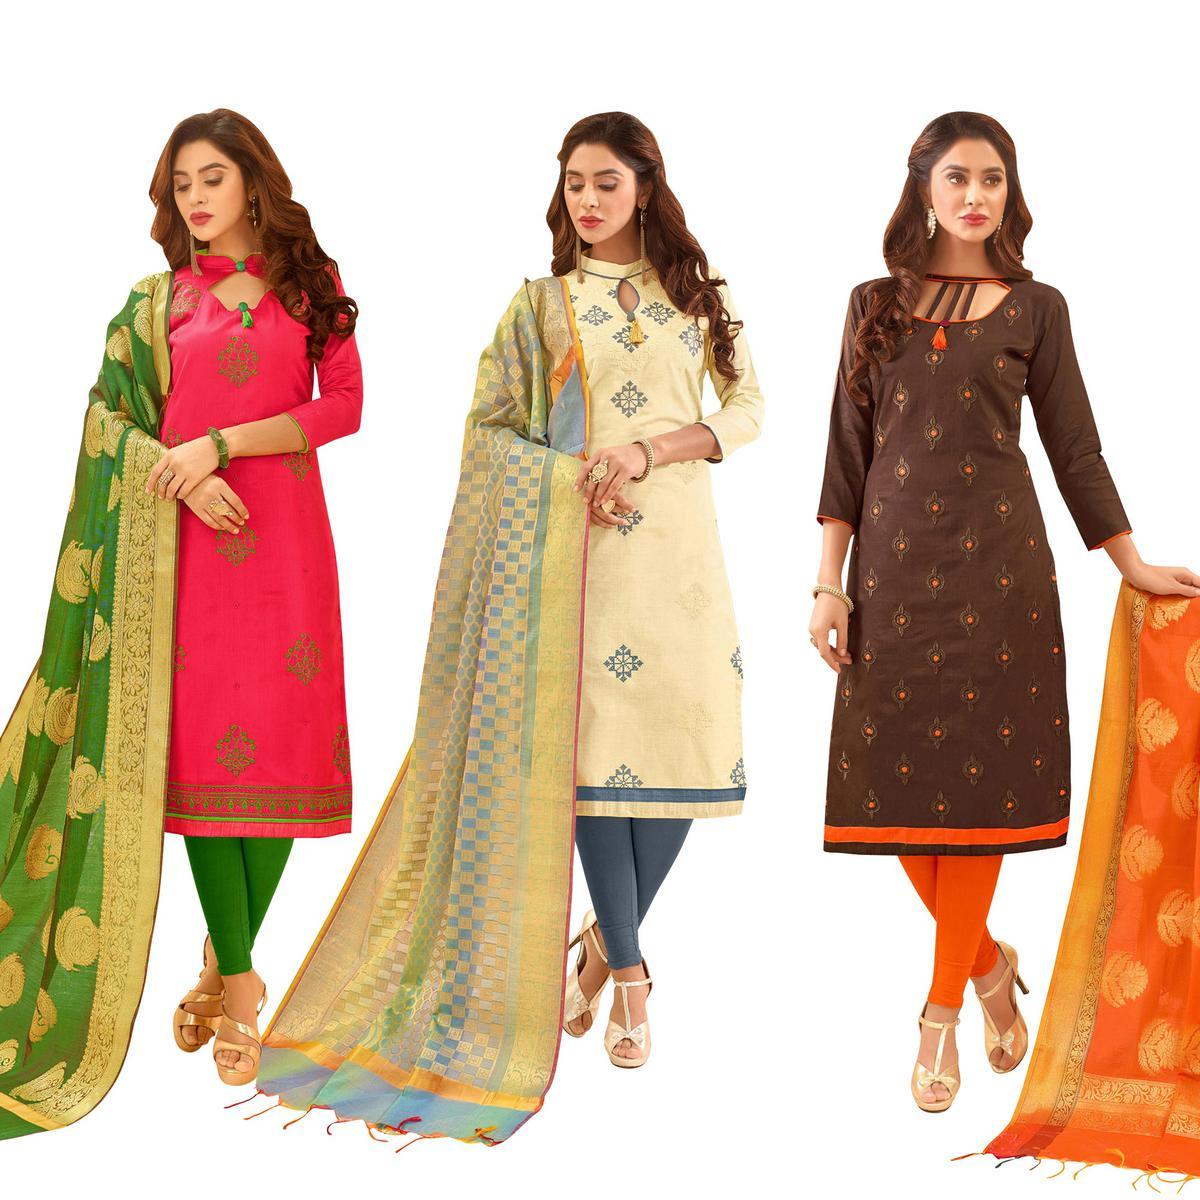 a5cbc250e7 Buy Irresistible Partywear Embroidered Cotton Suit With Pure Banarasi Silk  Dupatta - Pack of 3 for womens online India, Best Prices, Reviews -  Peachmode